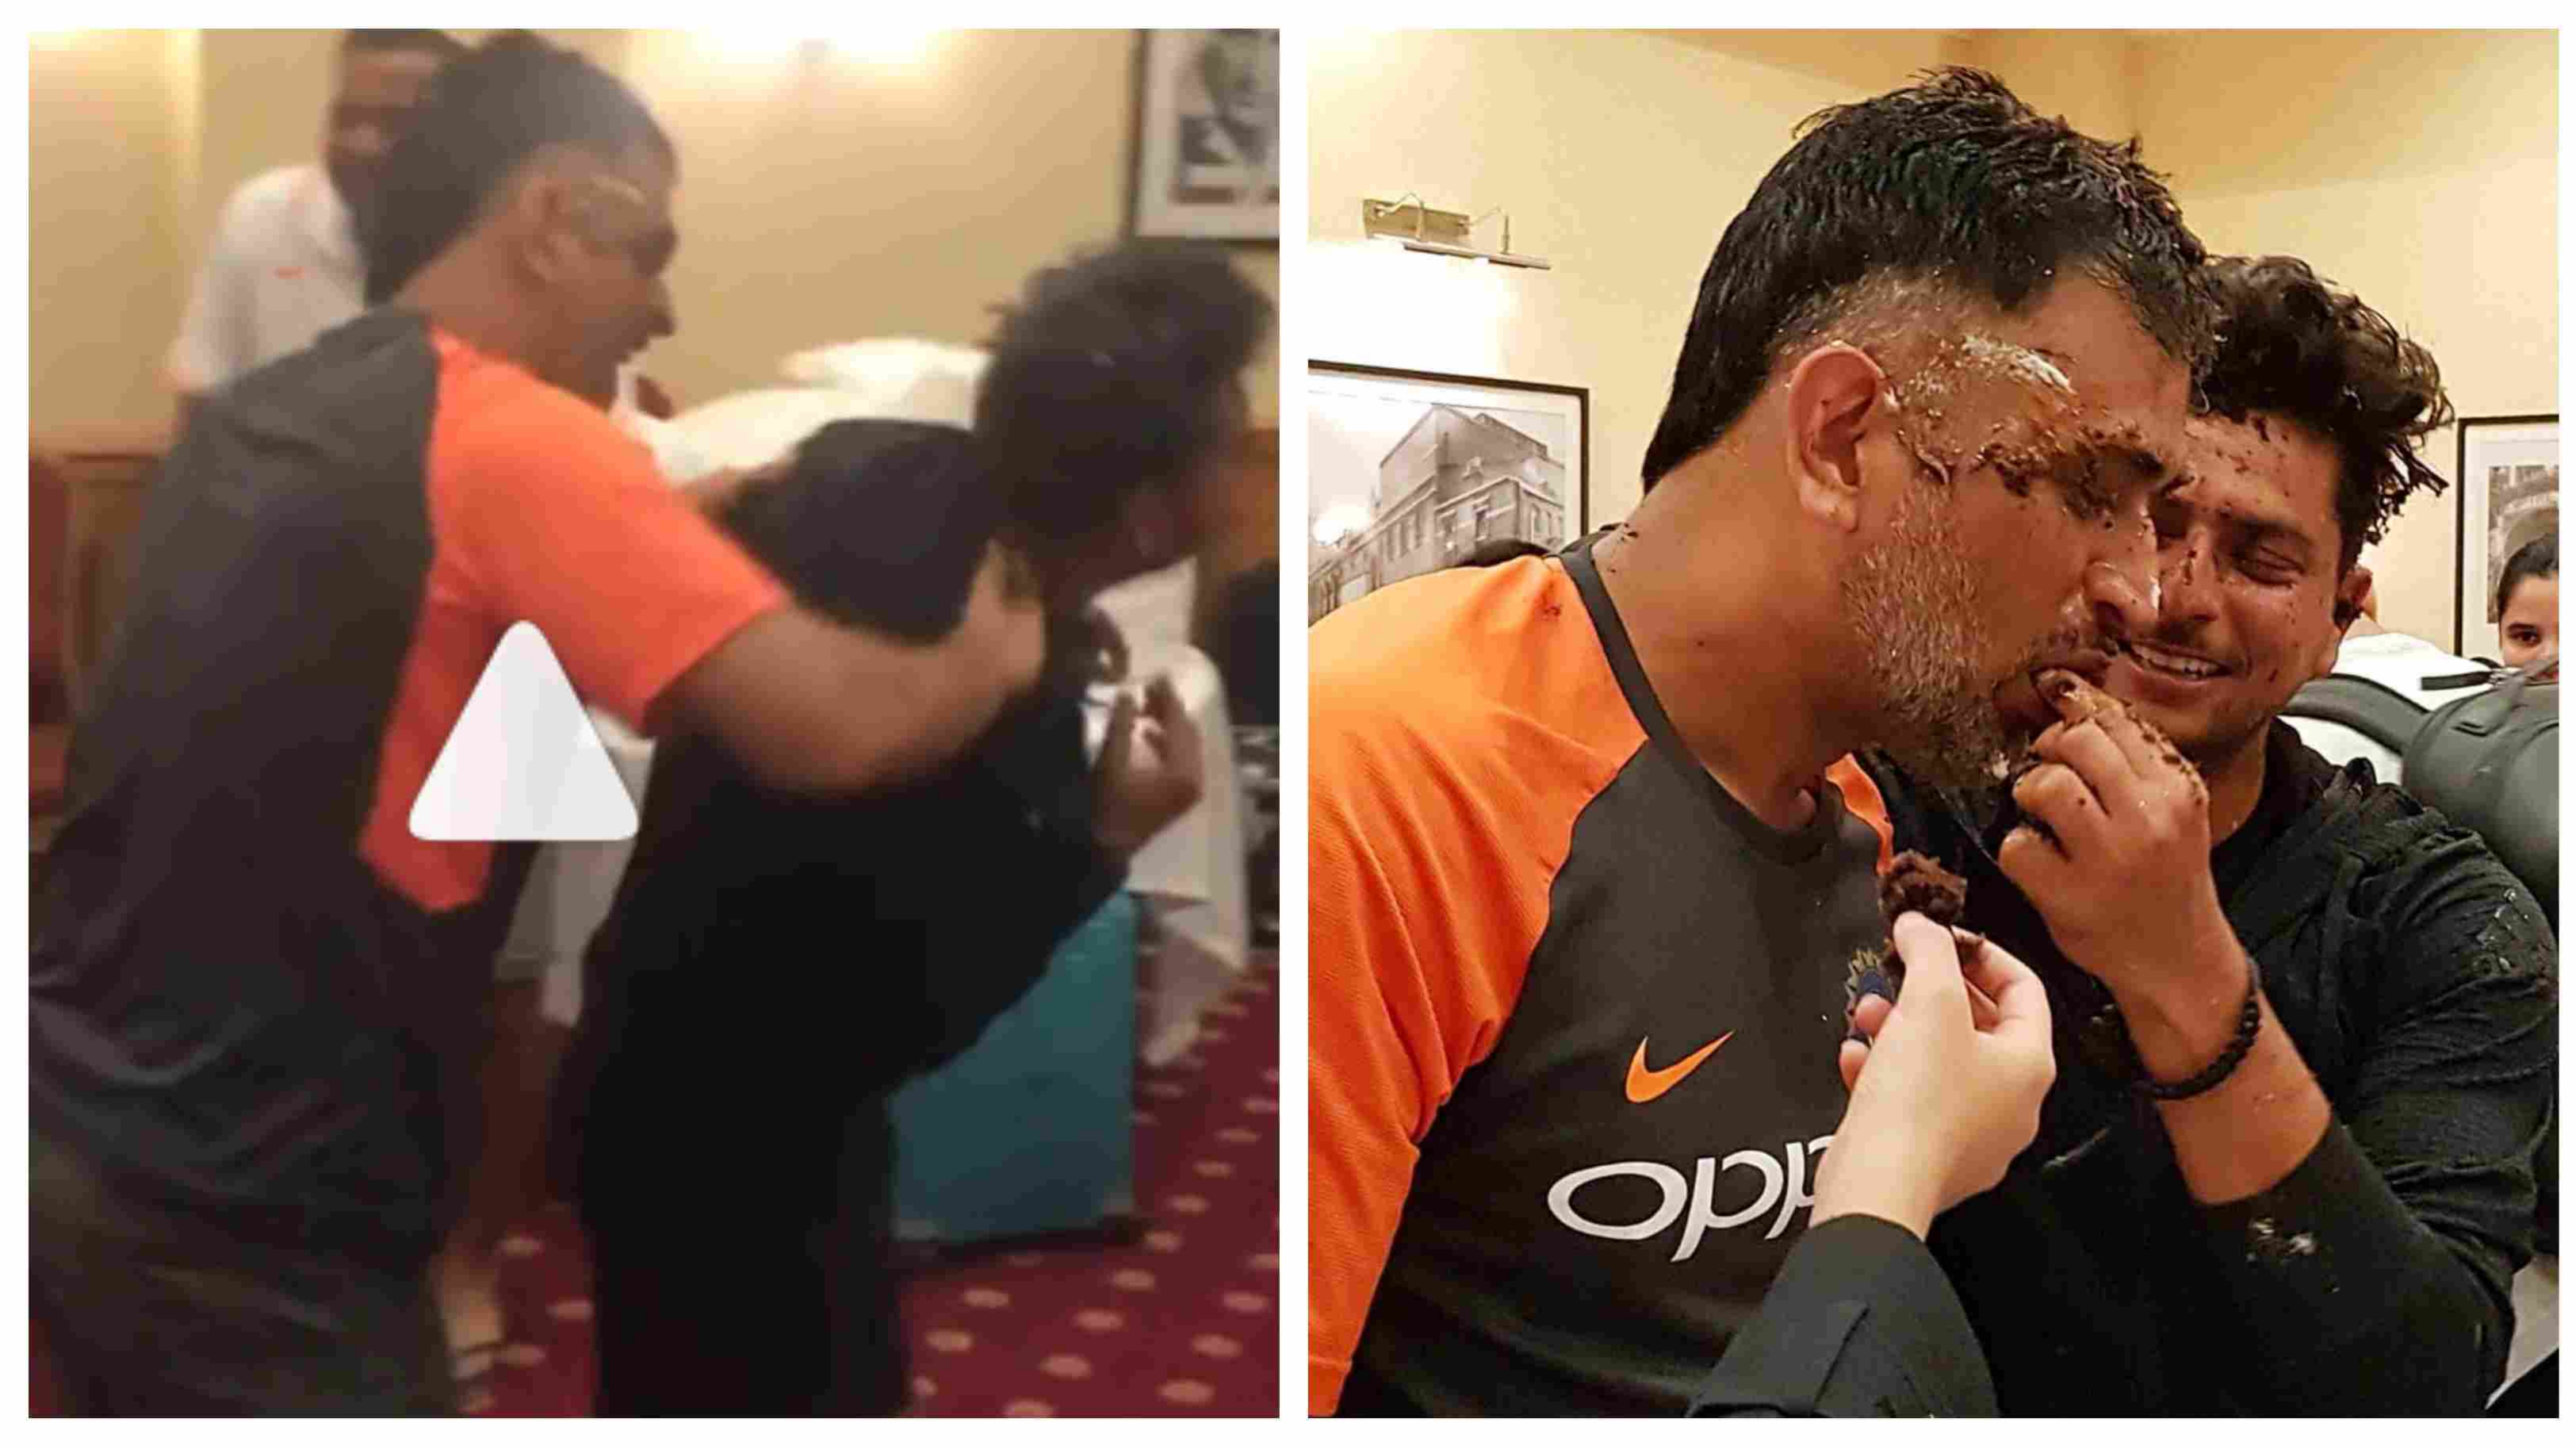 WATCH: MS Dhoni takes revenge from Kuldeep Yadav for smashing cake on his face